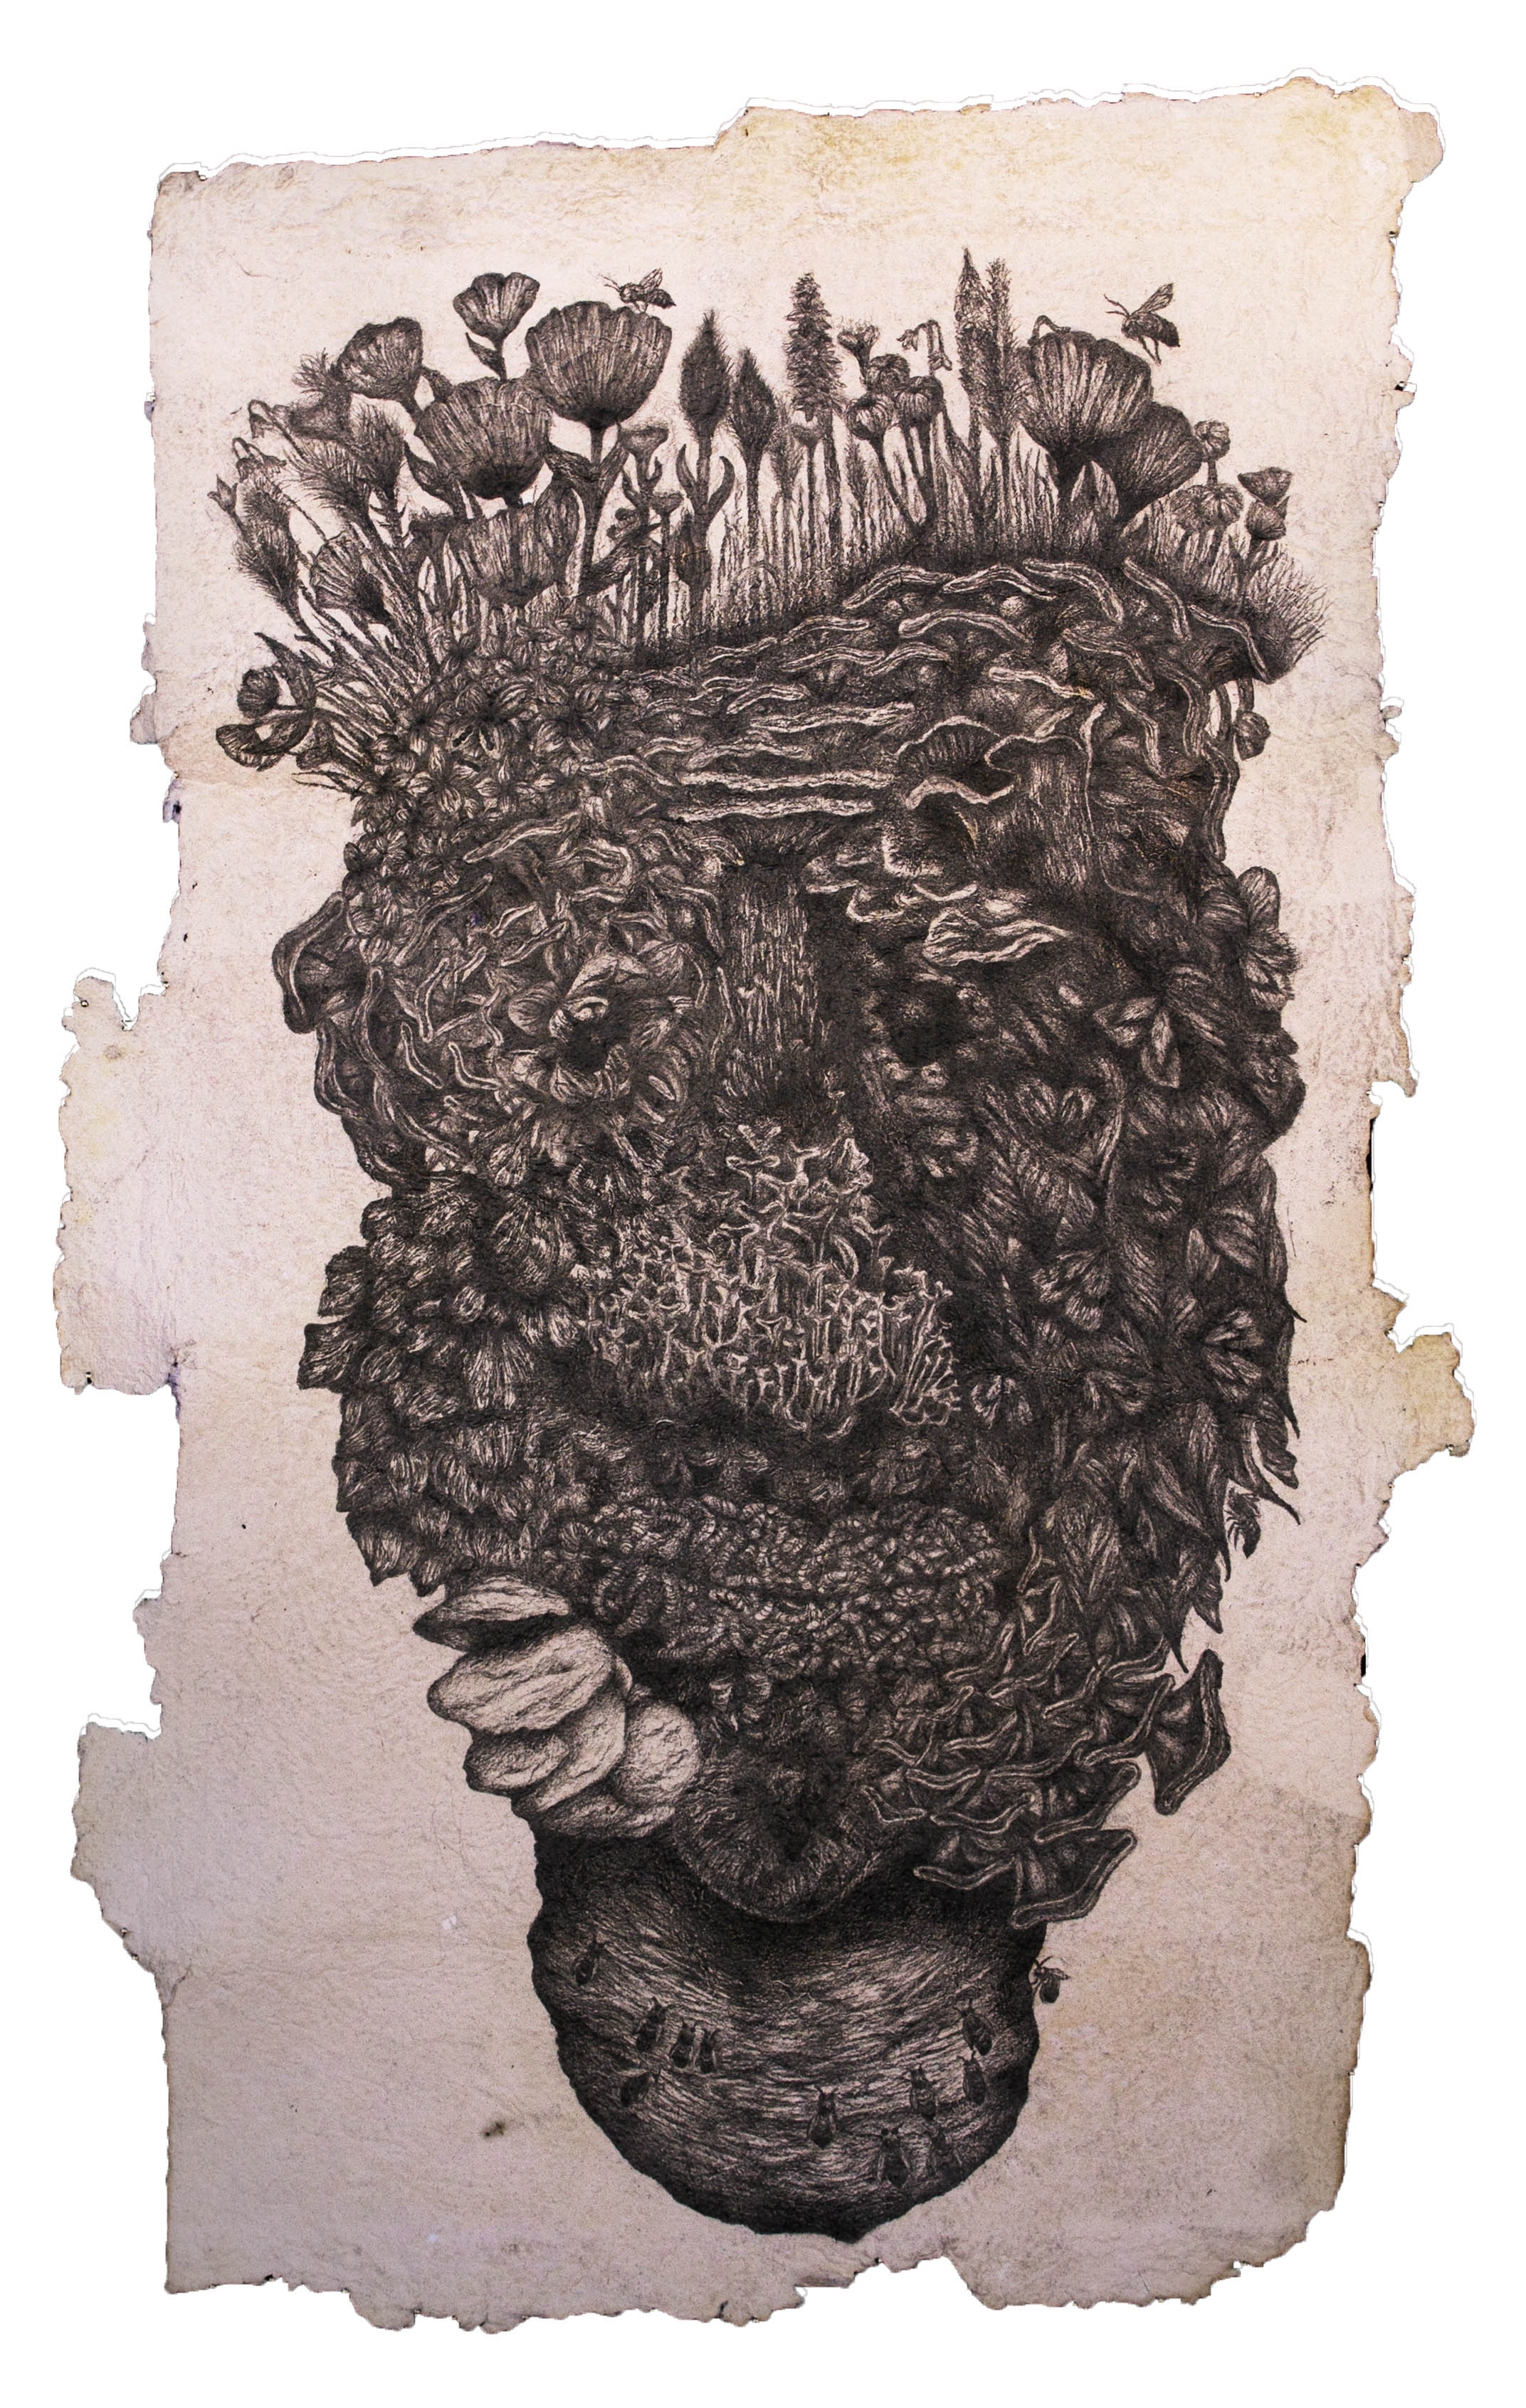 """Media: Graphite, hand-made paper  Size: 21"""" x 38""""  Completed in 2015, """"Evolved Generations"""" is the second piece in the """"Evolved Series"""". This image, like the others in this series depict a human face, that has been composed using textures and plant, and insect life. When making this drawing, I was thinking about our human connections to life, and how every part of our being has been made possible through our environments. I then began to question the human existence and what would our remains, or the shrines placed only for human consumption, would look after being left to nature's devices."""